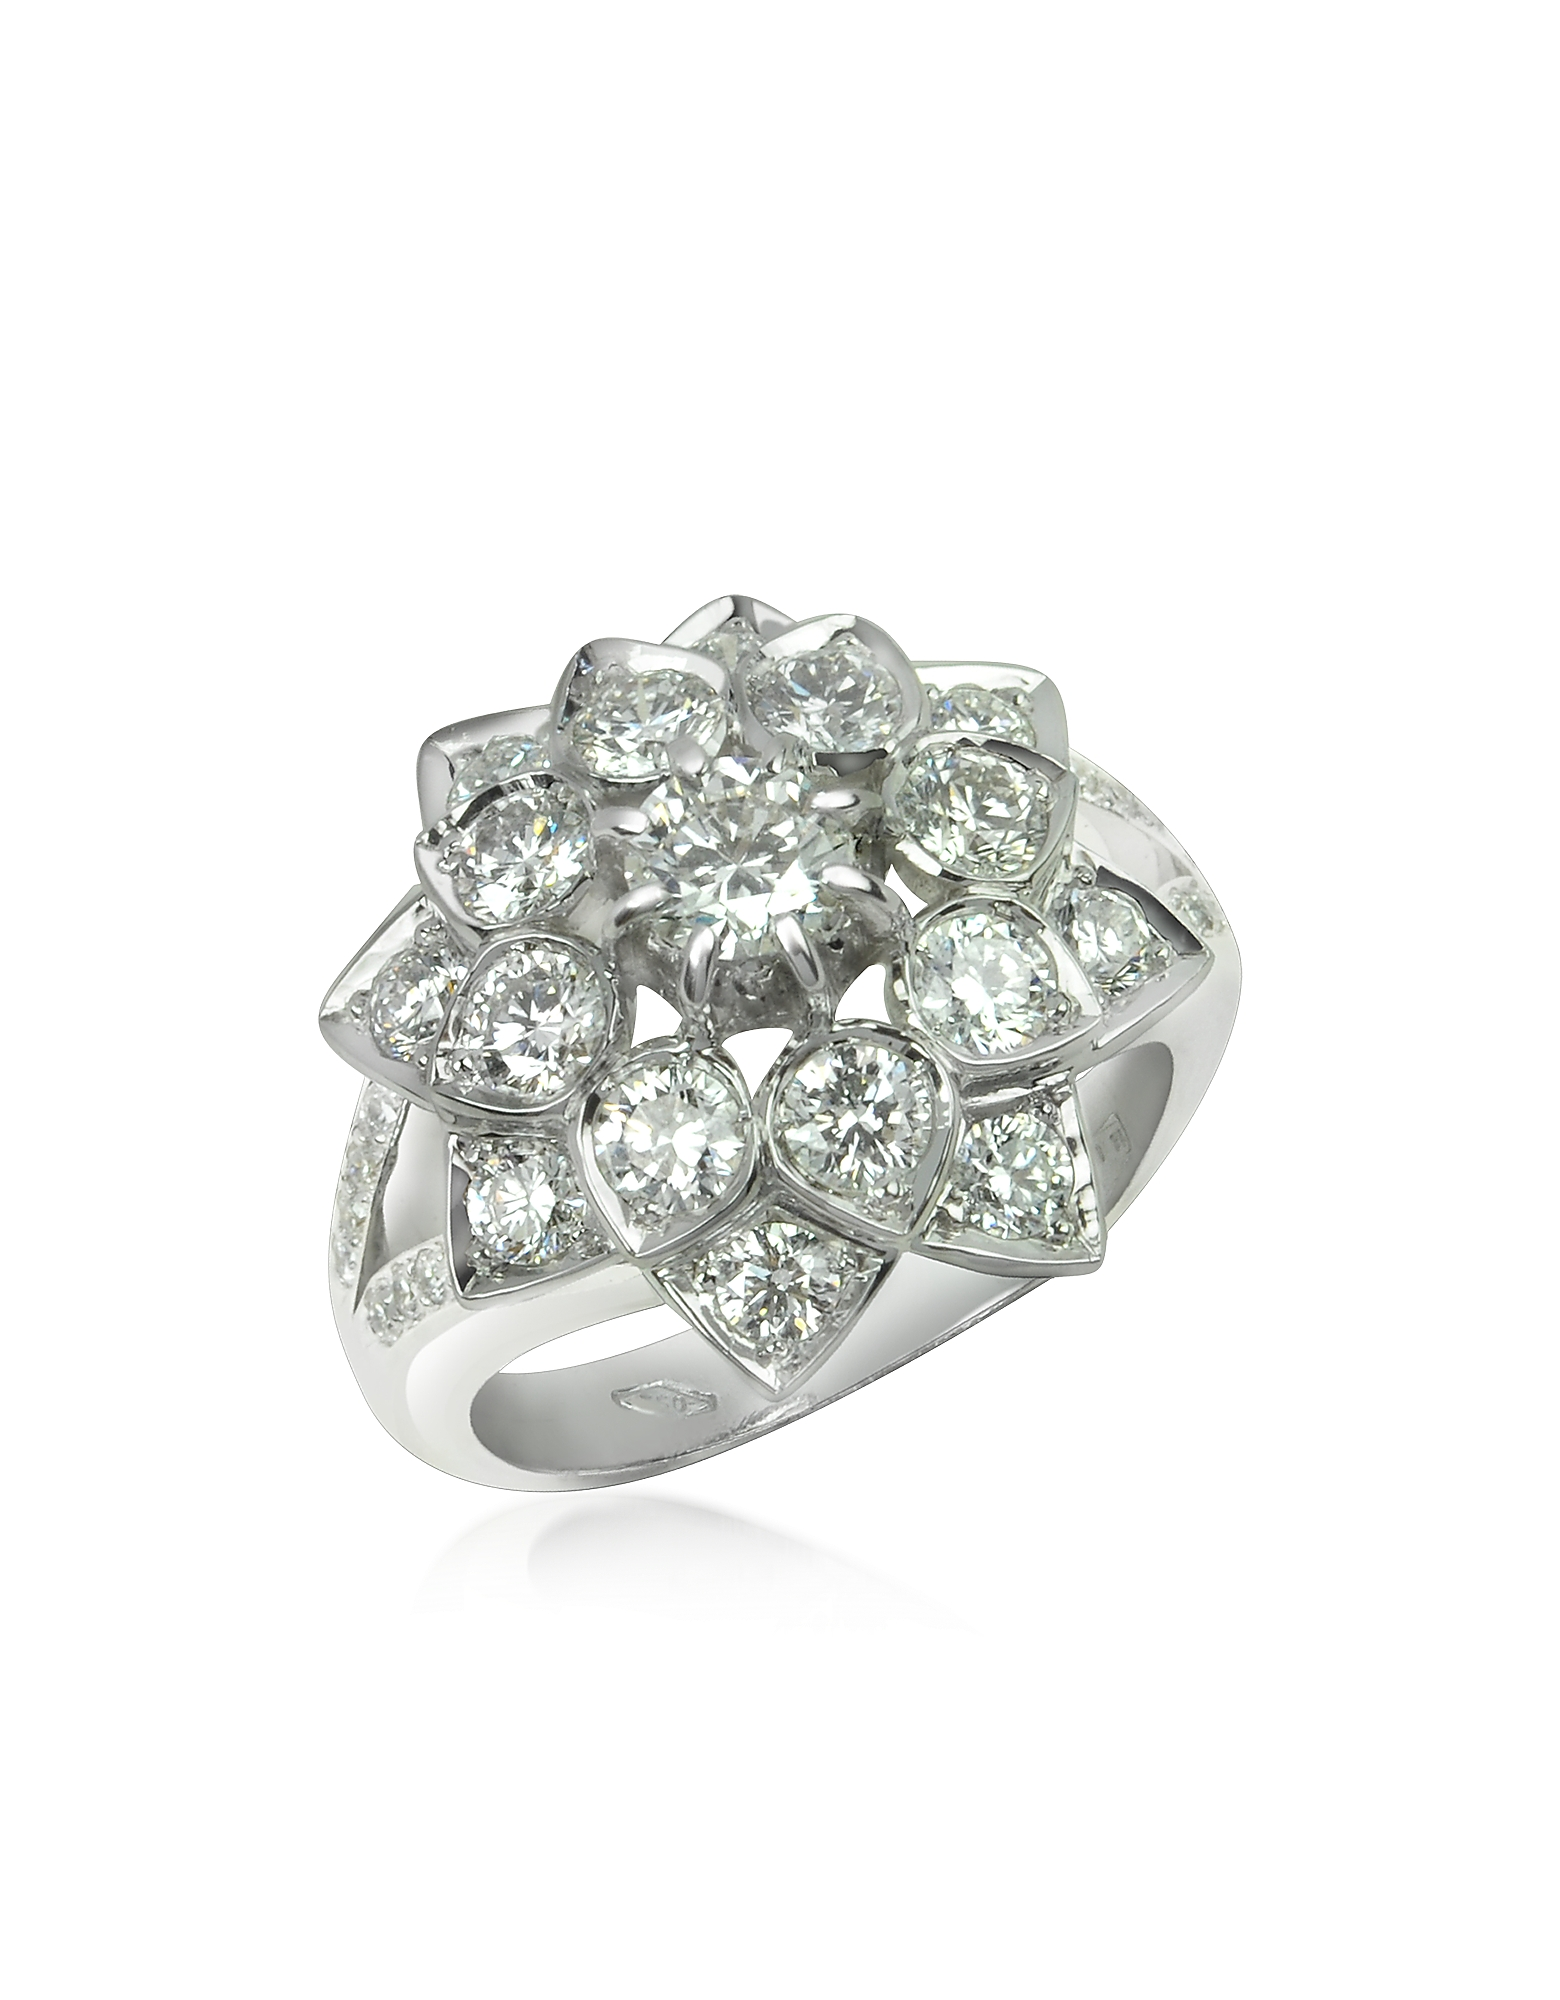 Incanto Royale Rings, 1.44 ctw Diamond 18K Gold Ring